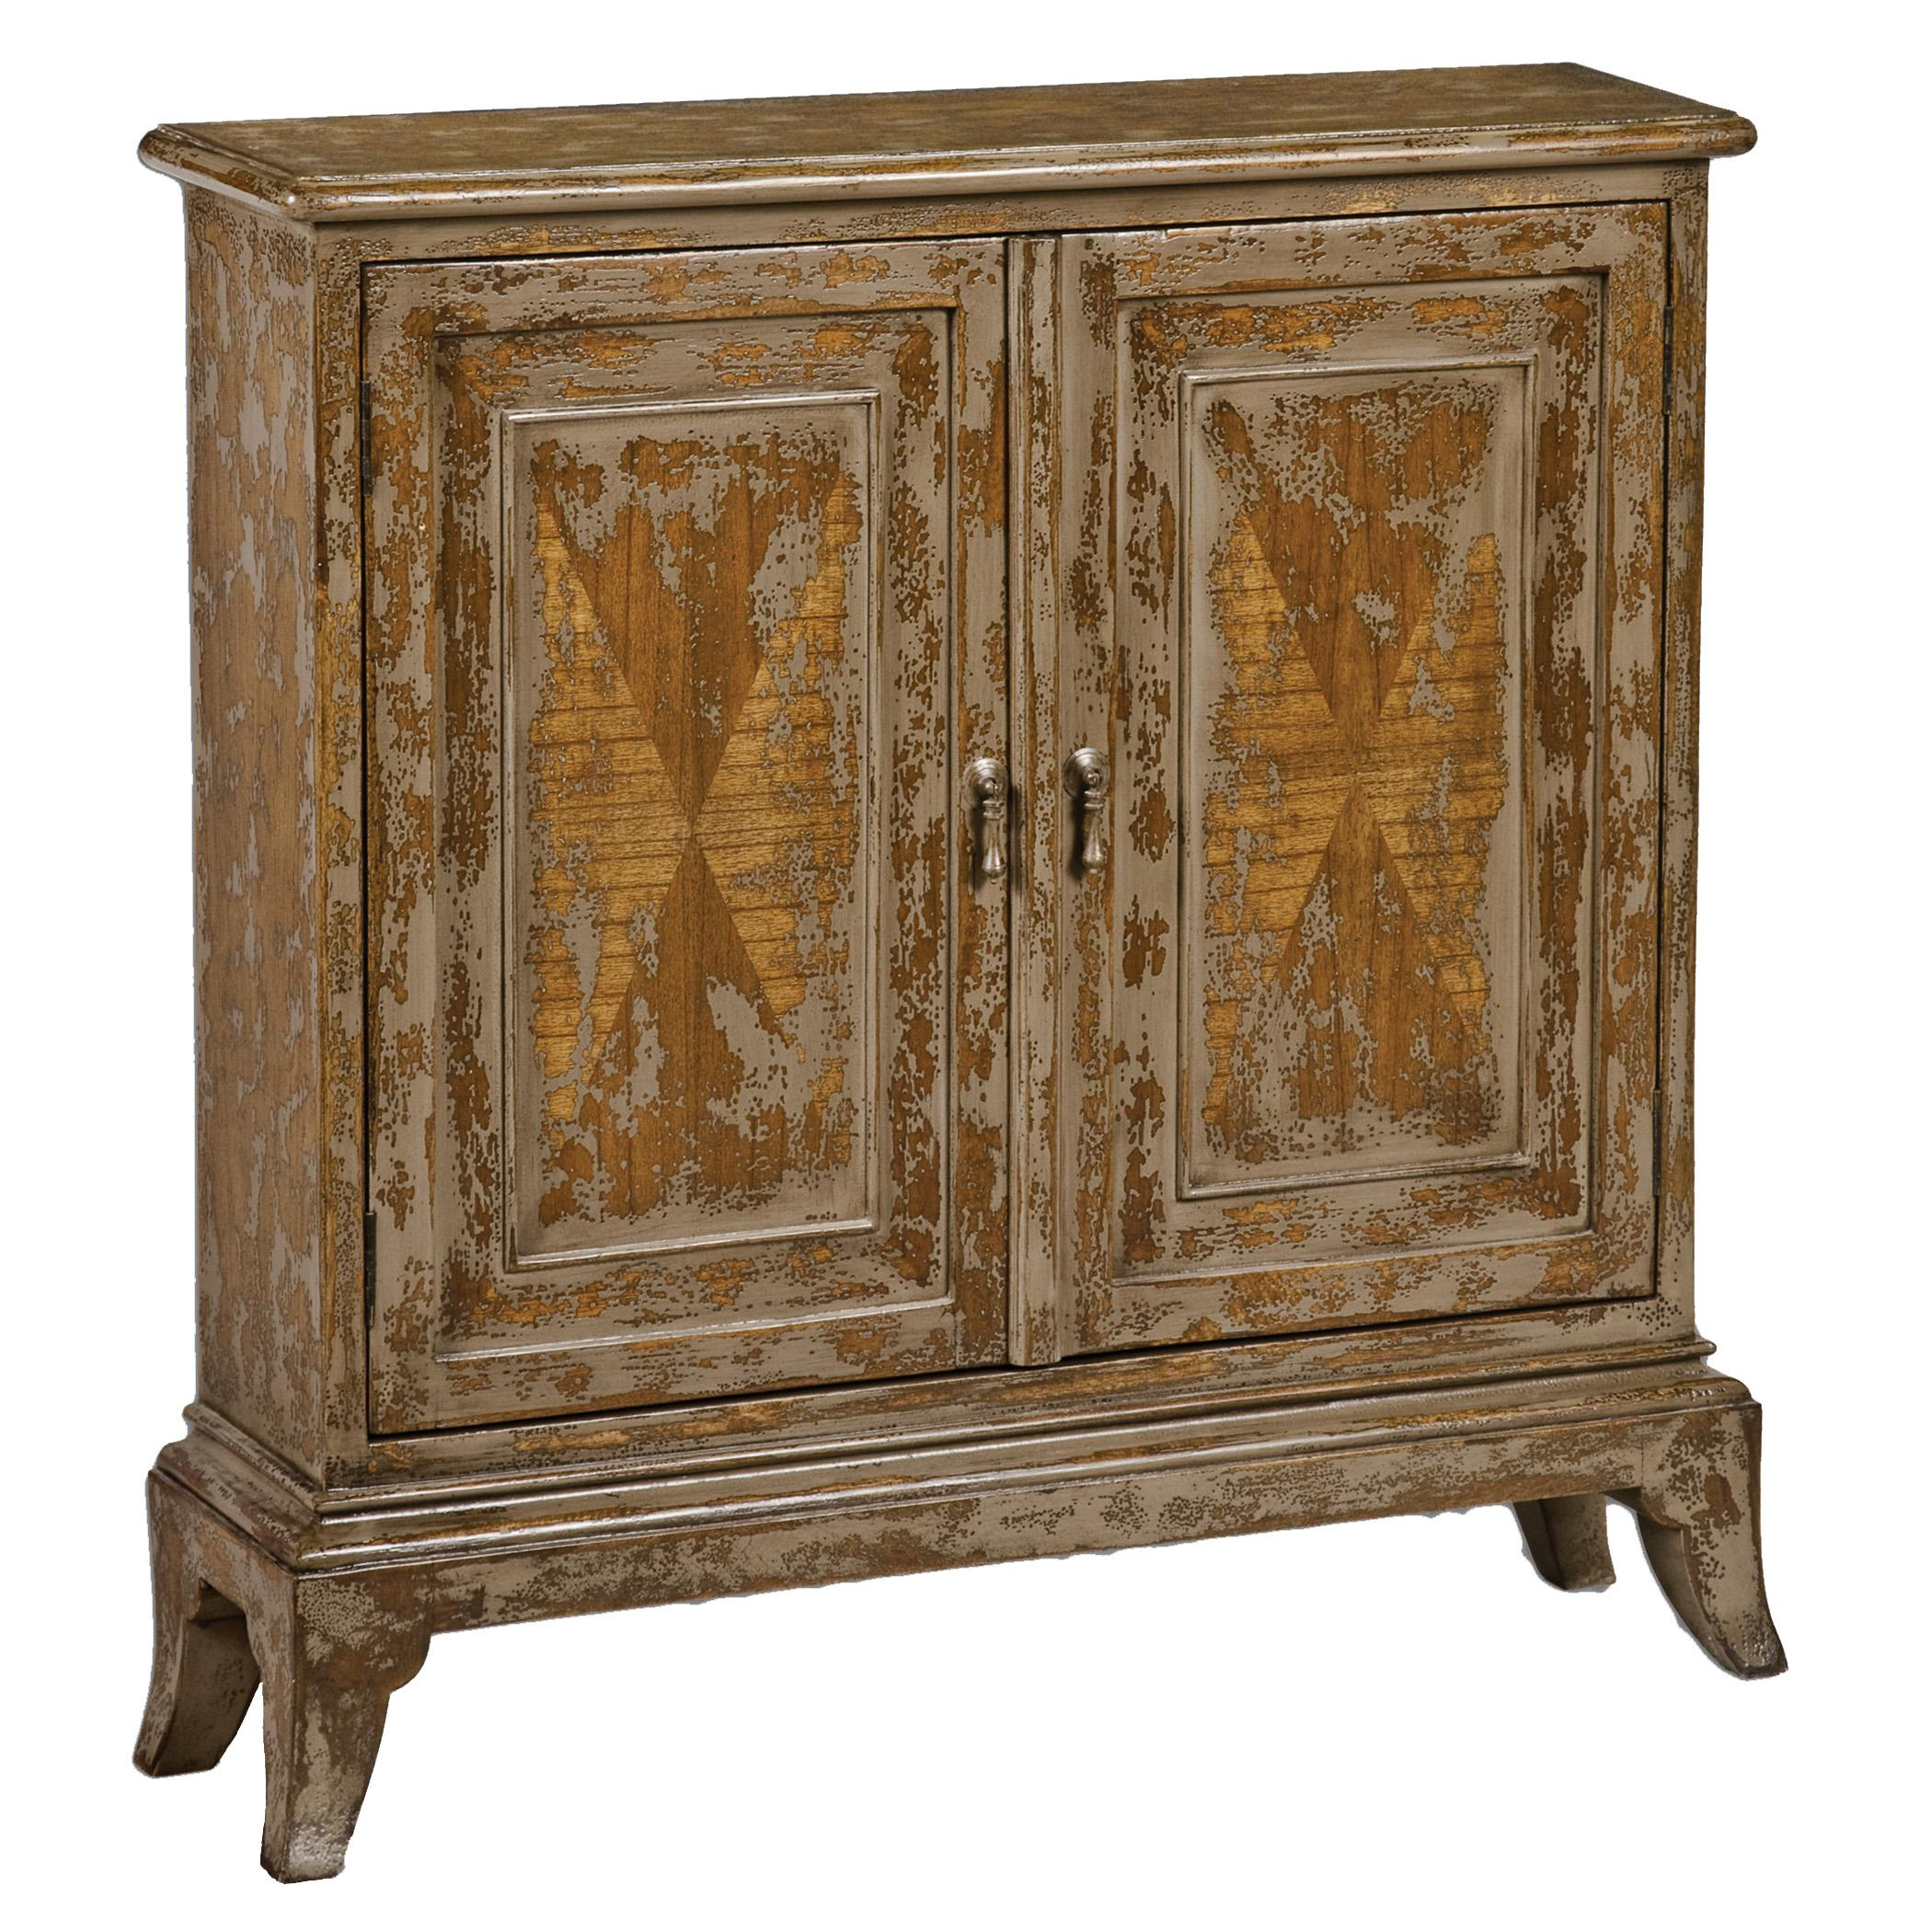 Accent Furniture - Chests Maguire Console Cabinet by Uttermost at Factory Direct Furniture